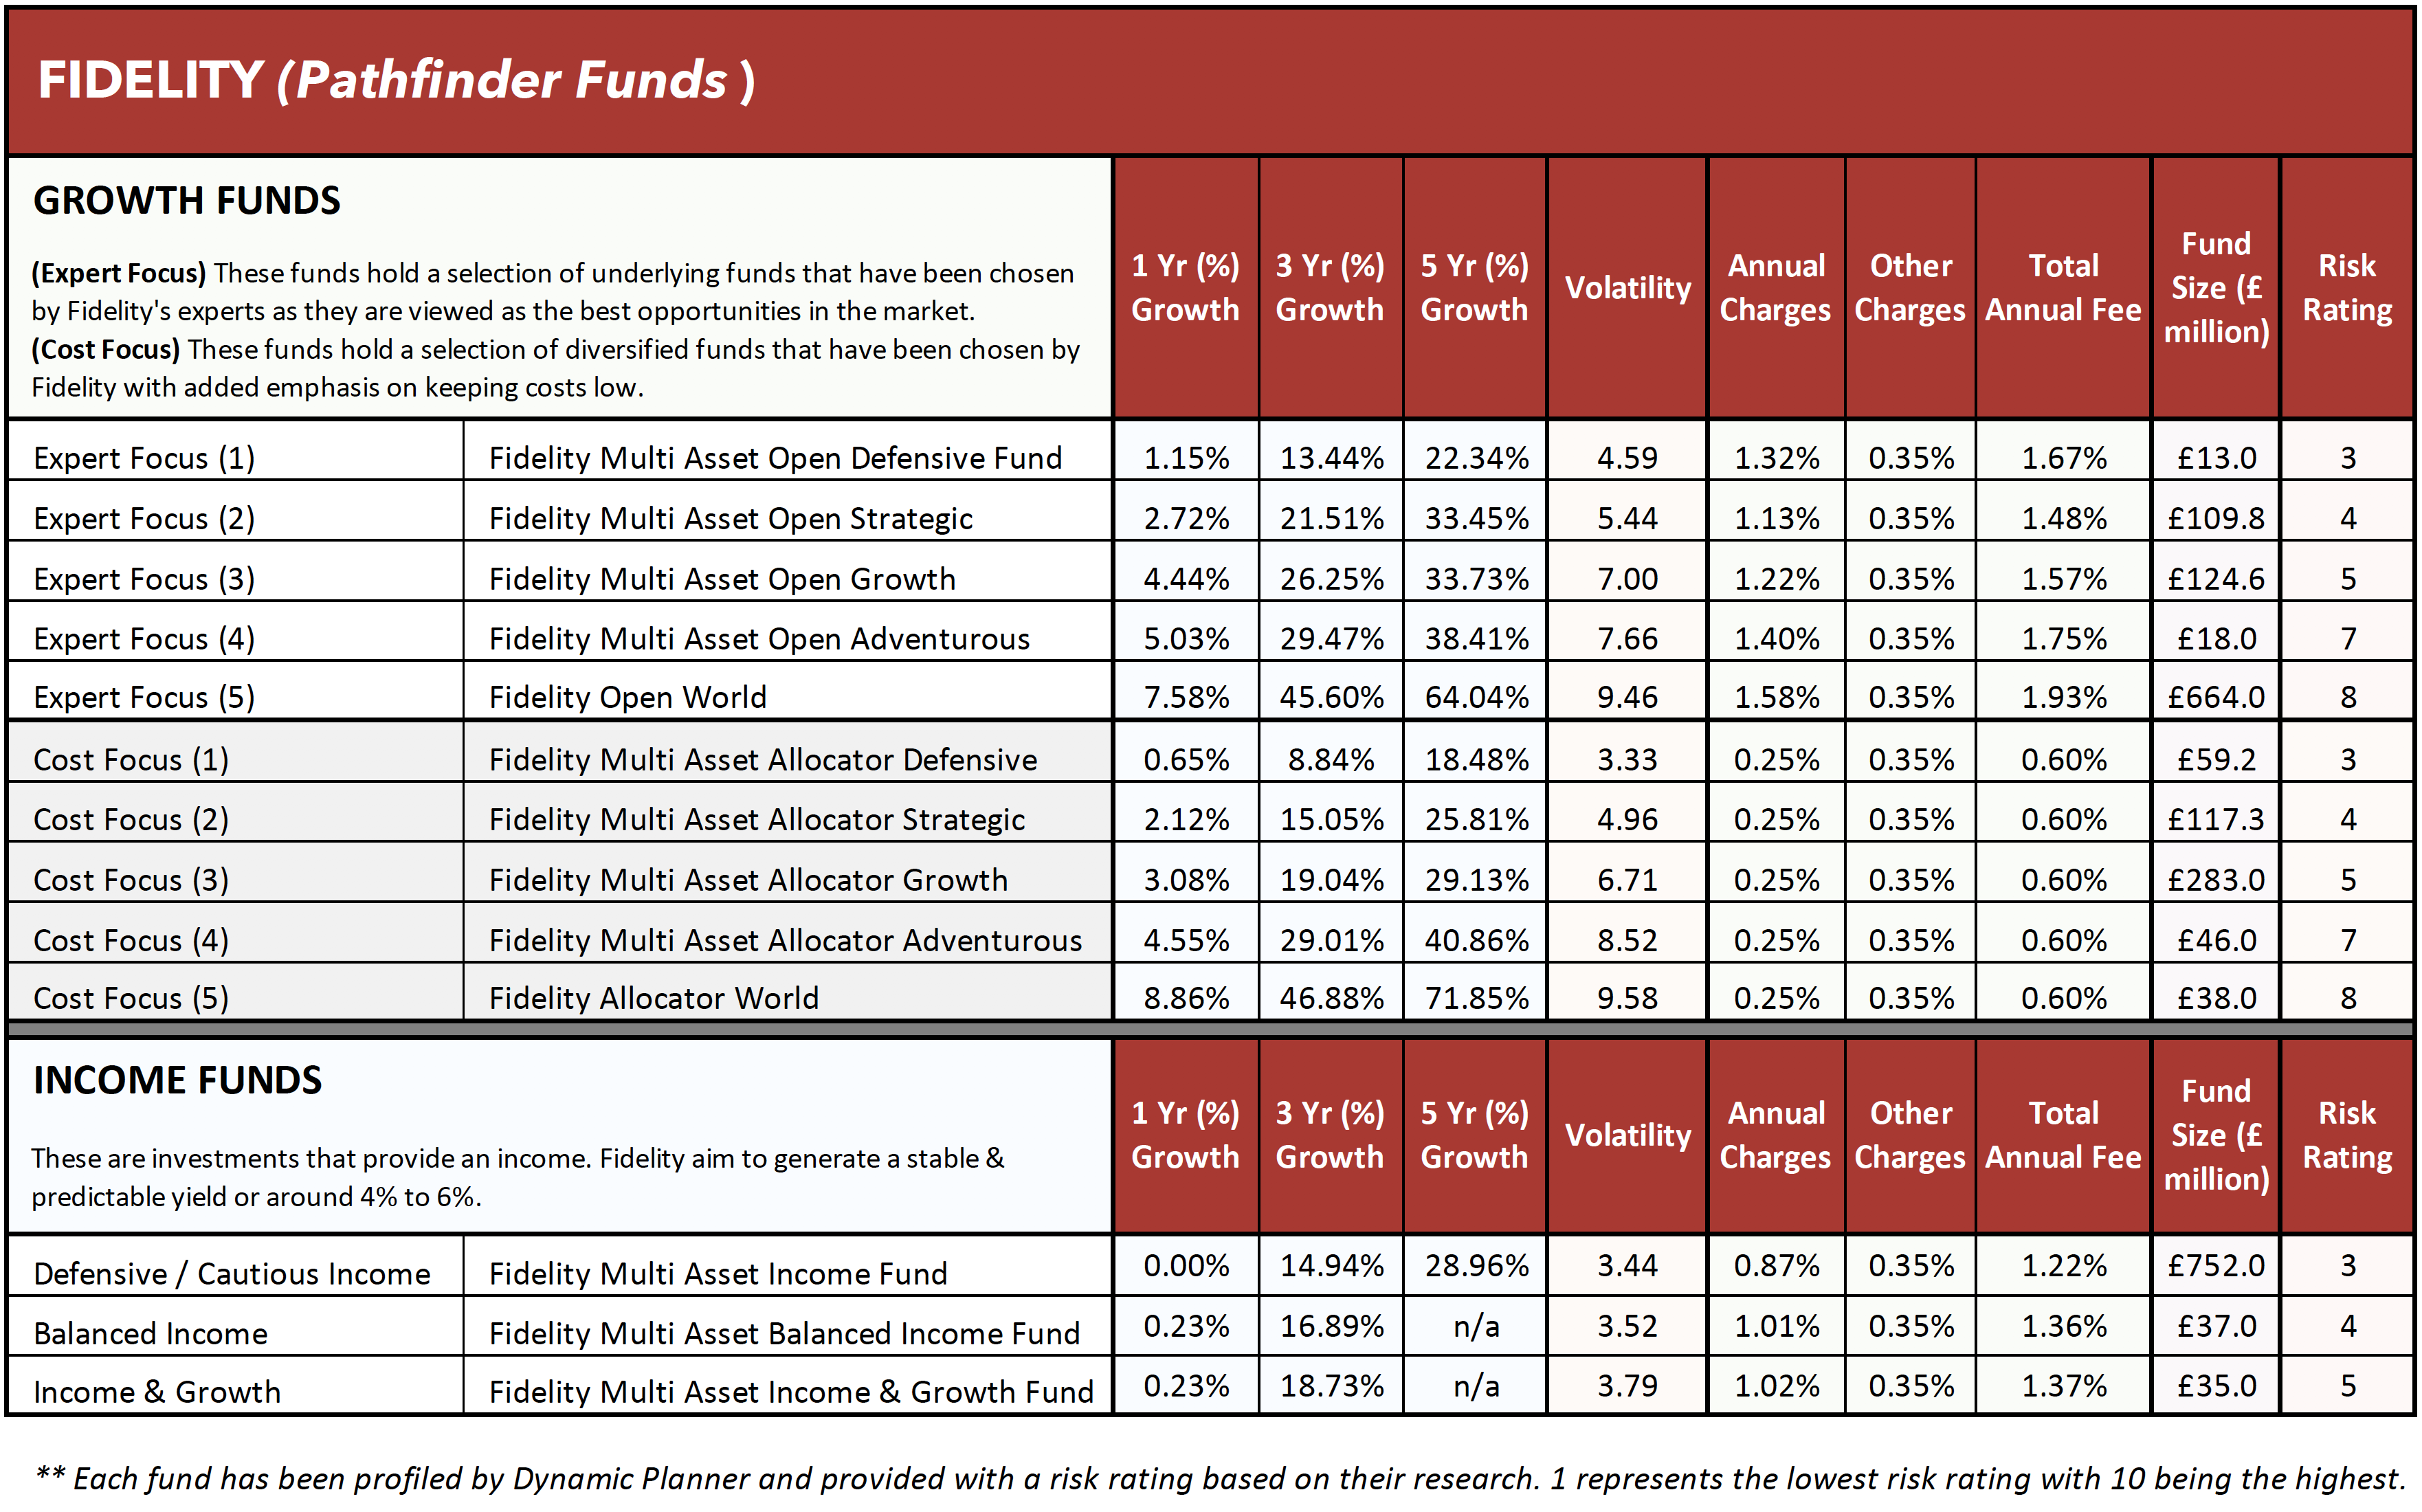 Fidelity Pathfinder funds